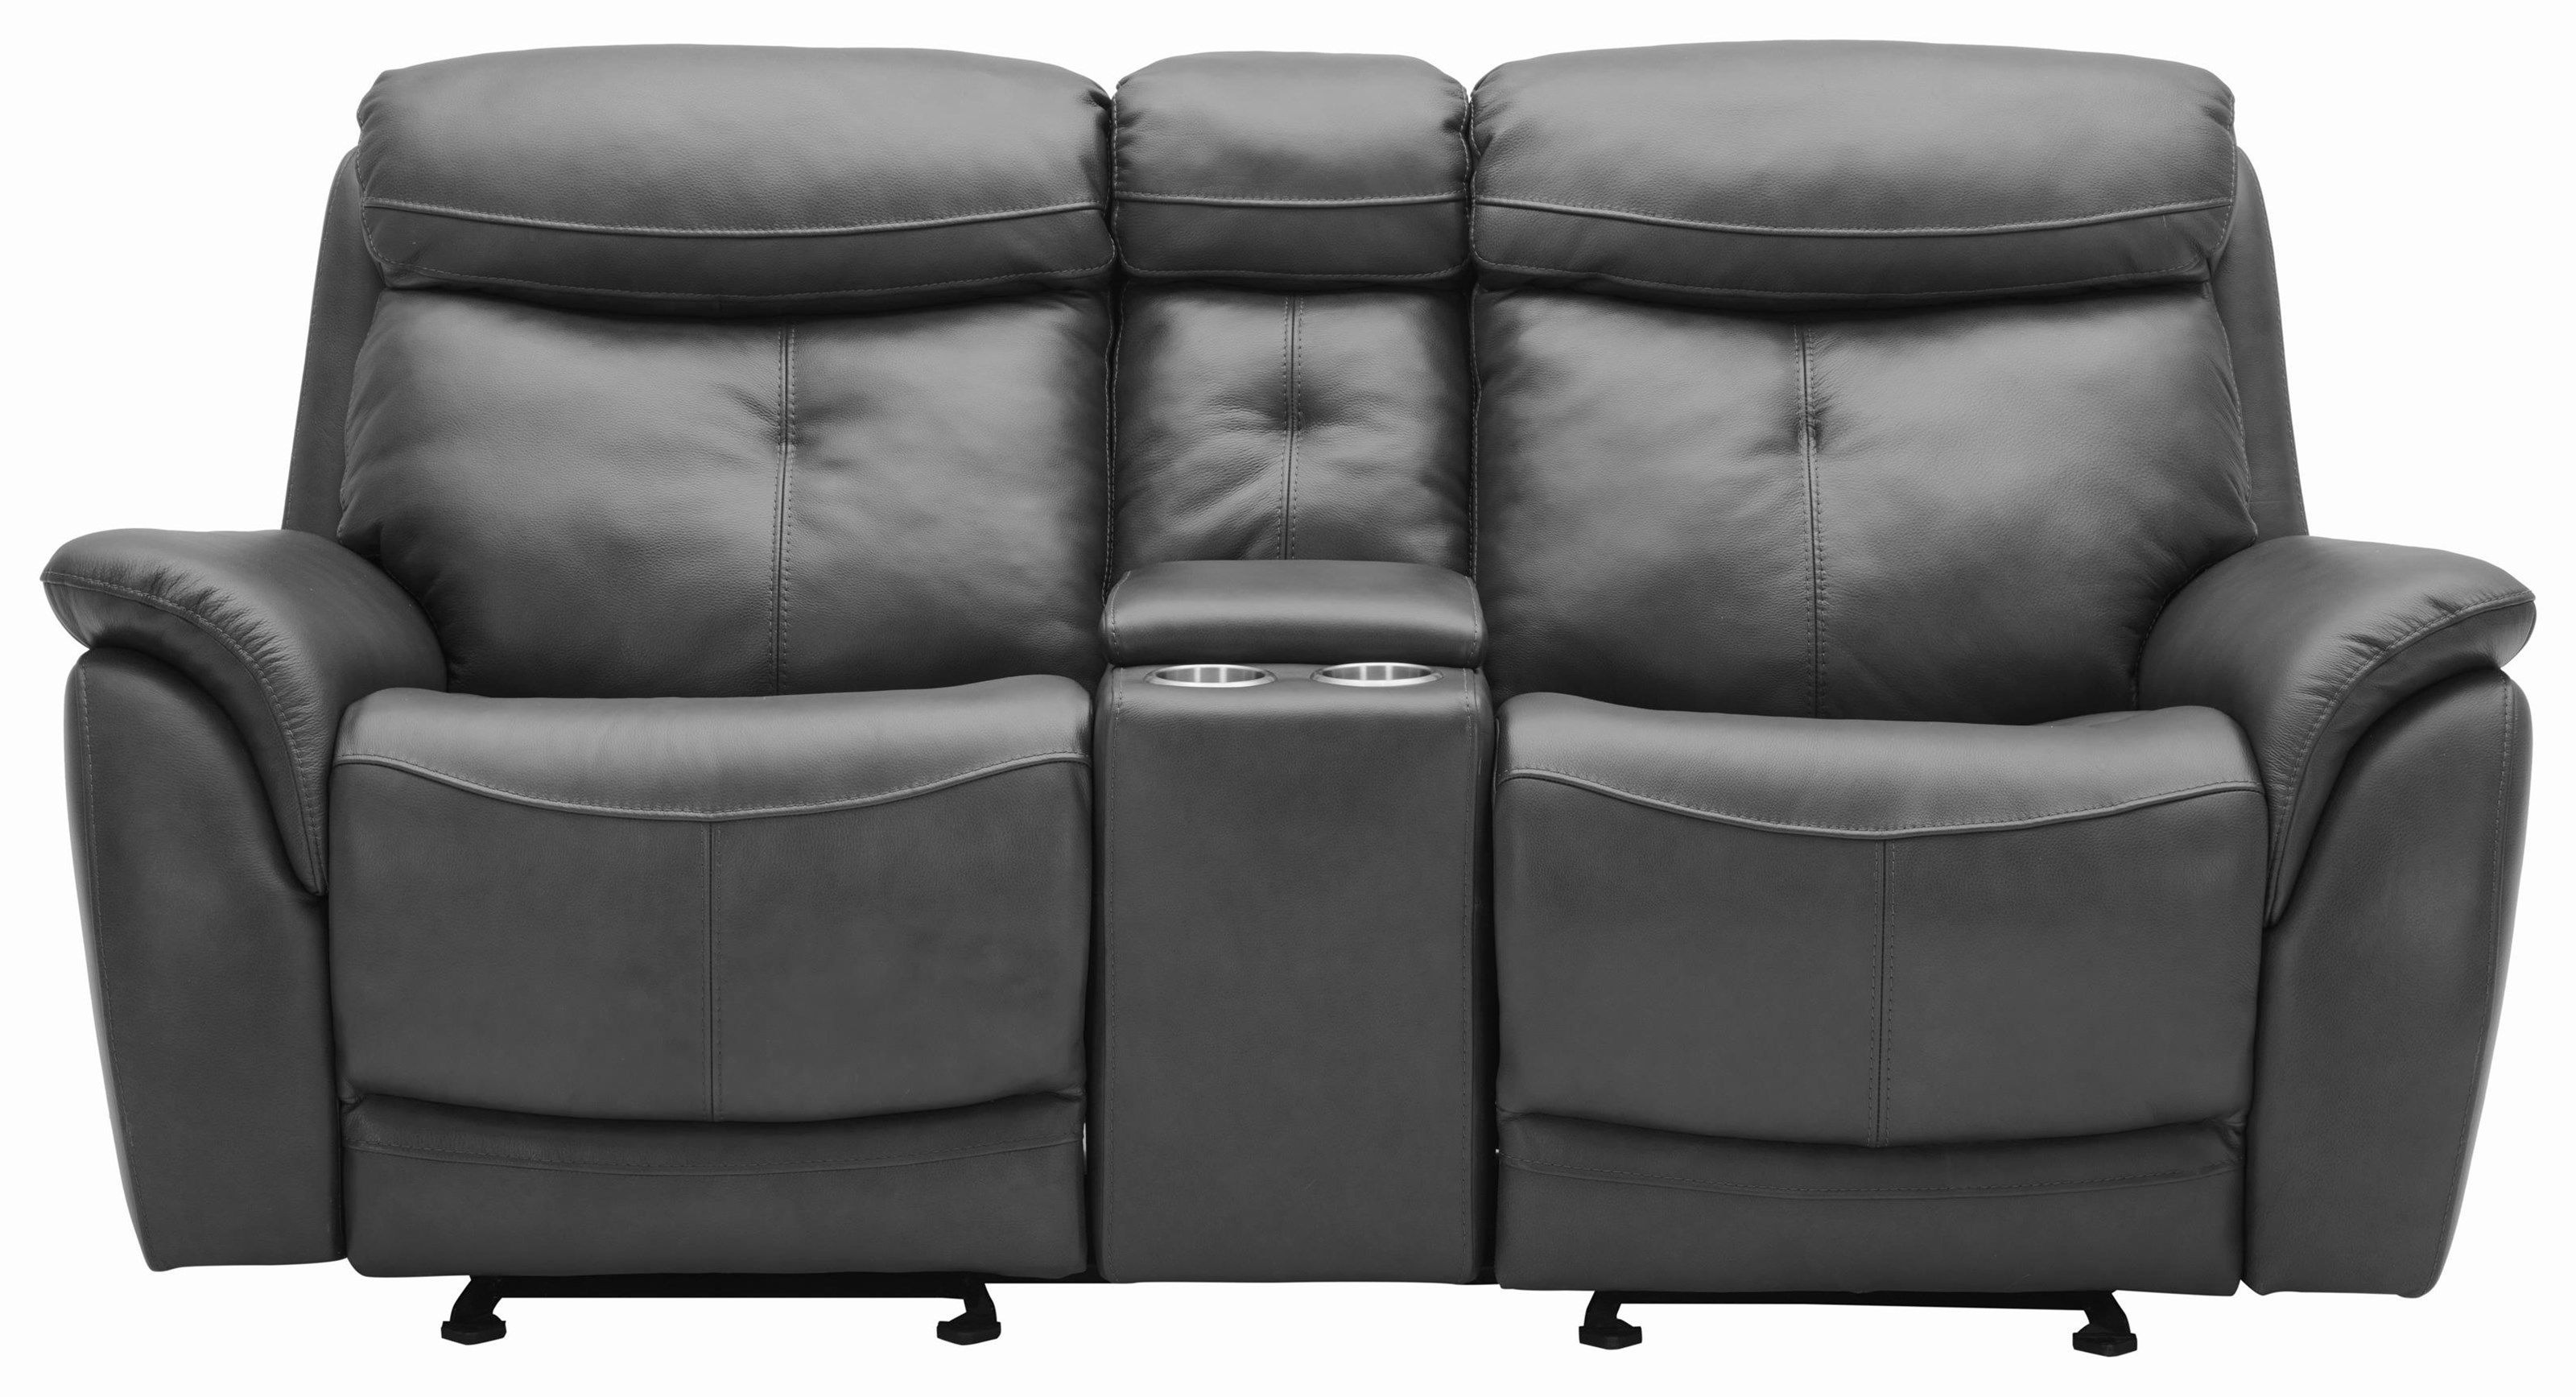 Largos PWR Reclining Leather Love w/ PWR Headrest by K.C. at Walker's Furniture